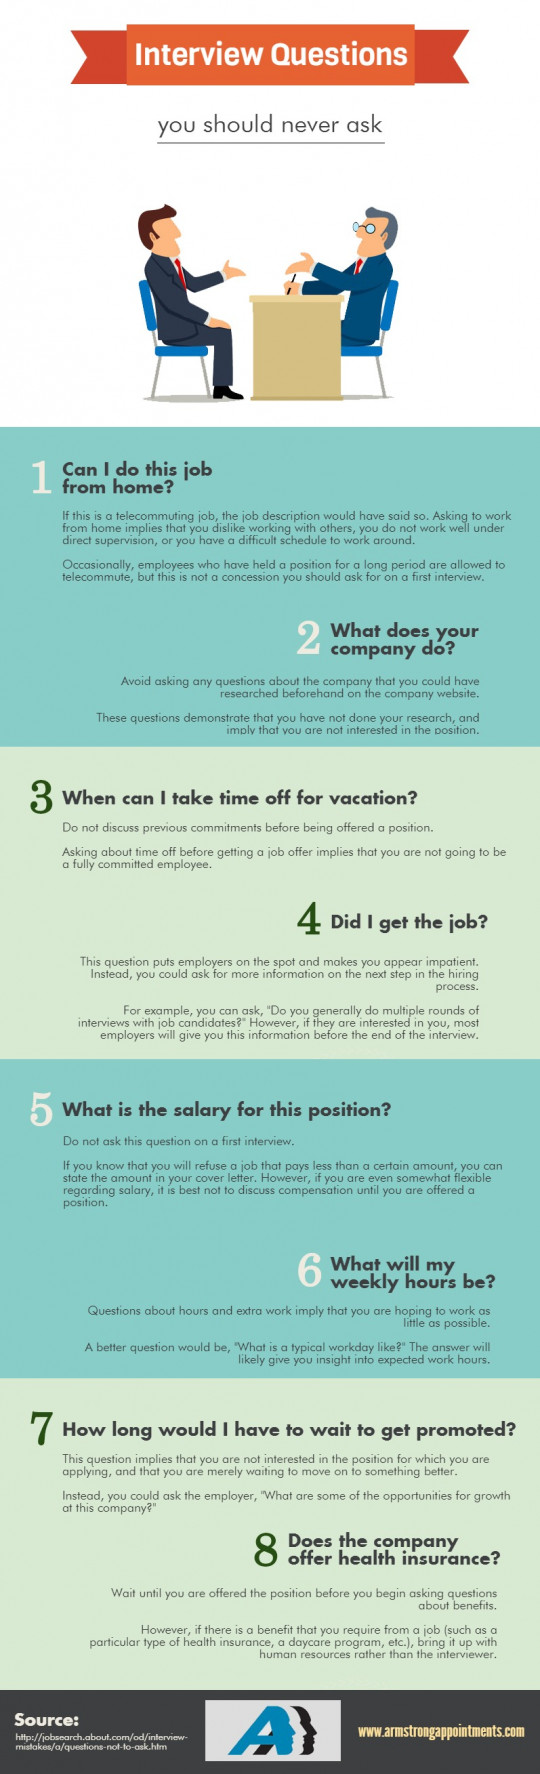 8 Interview Questions You Should Never Ask